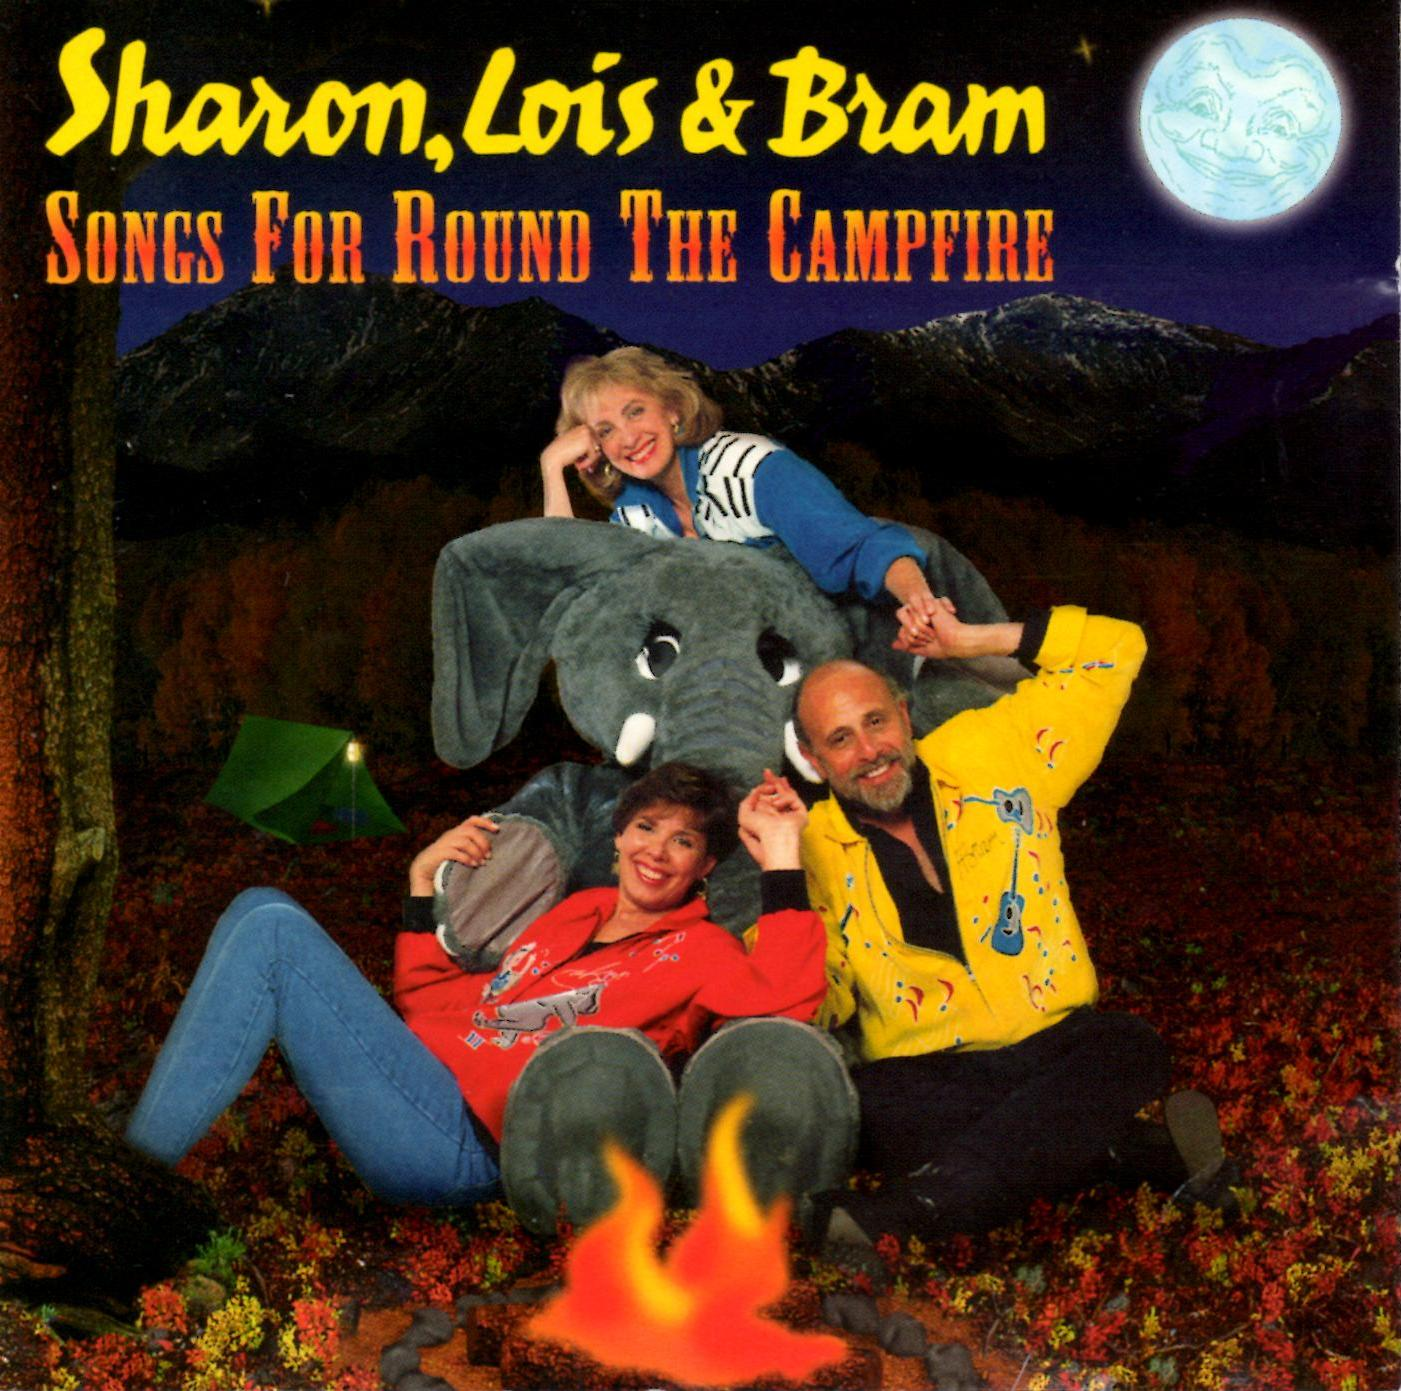 Songs for Round the Campfire.JPG